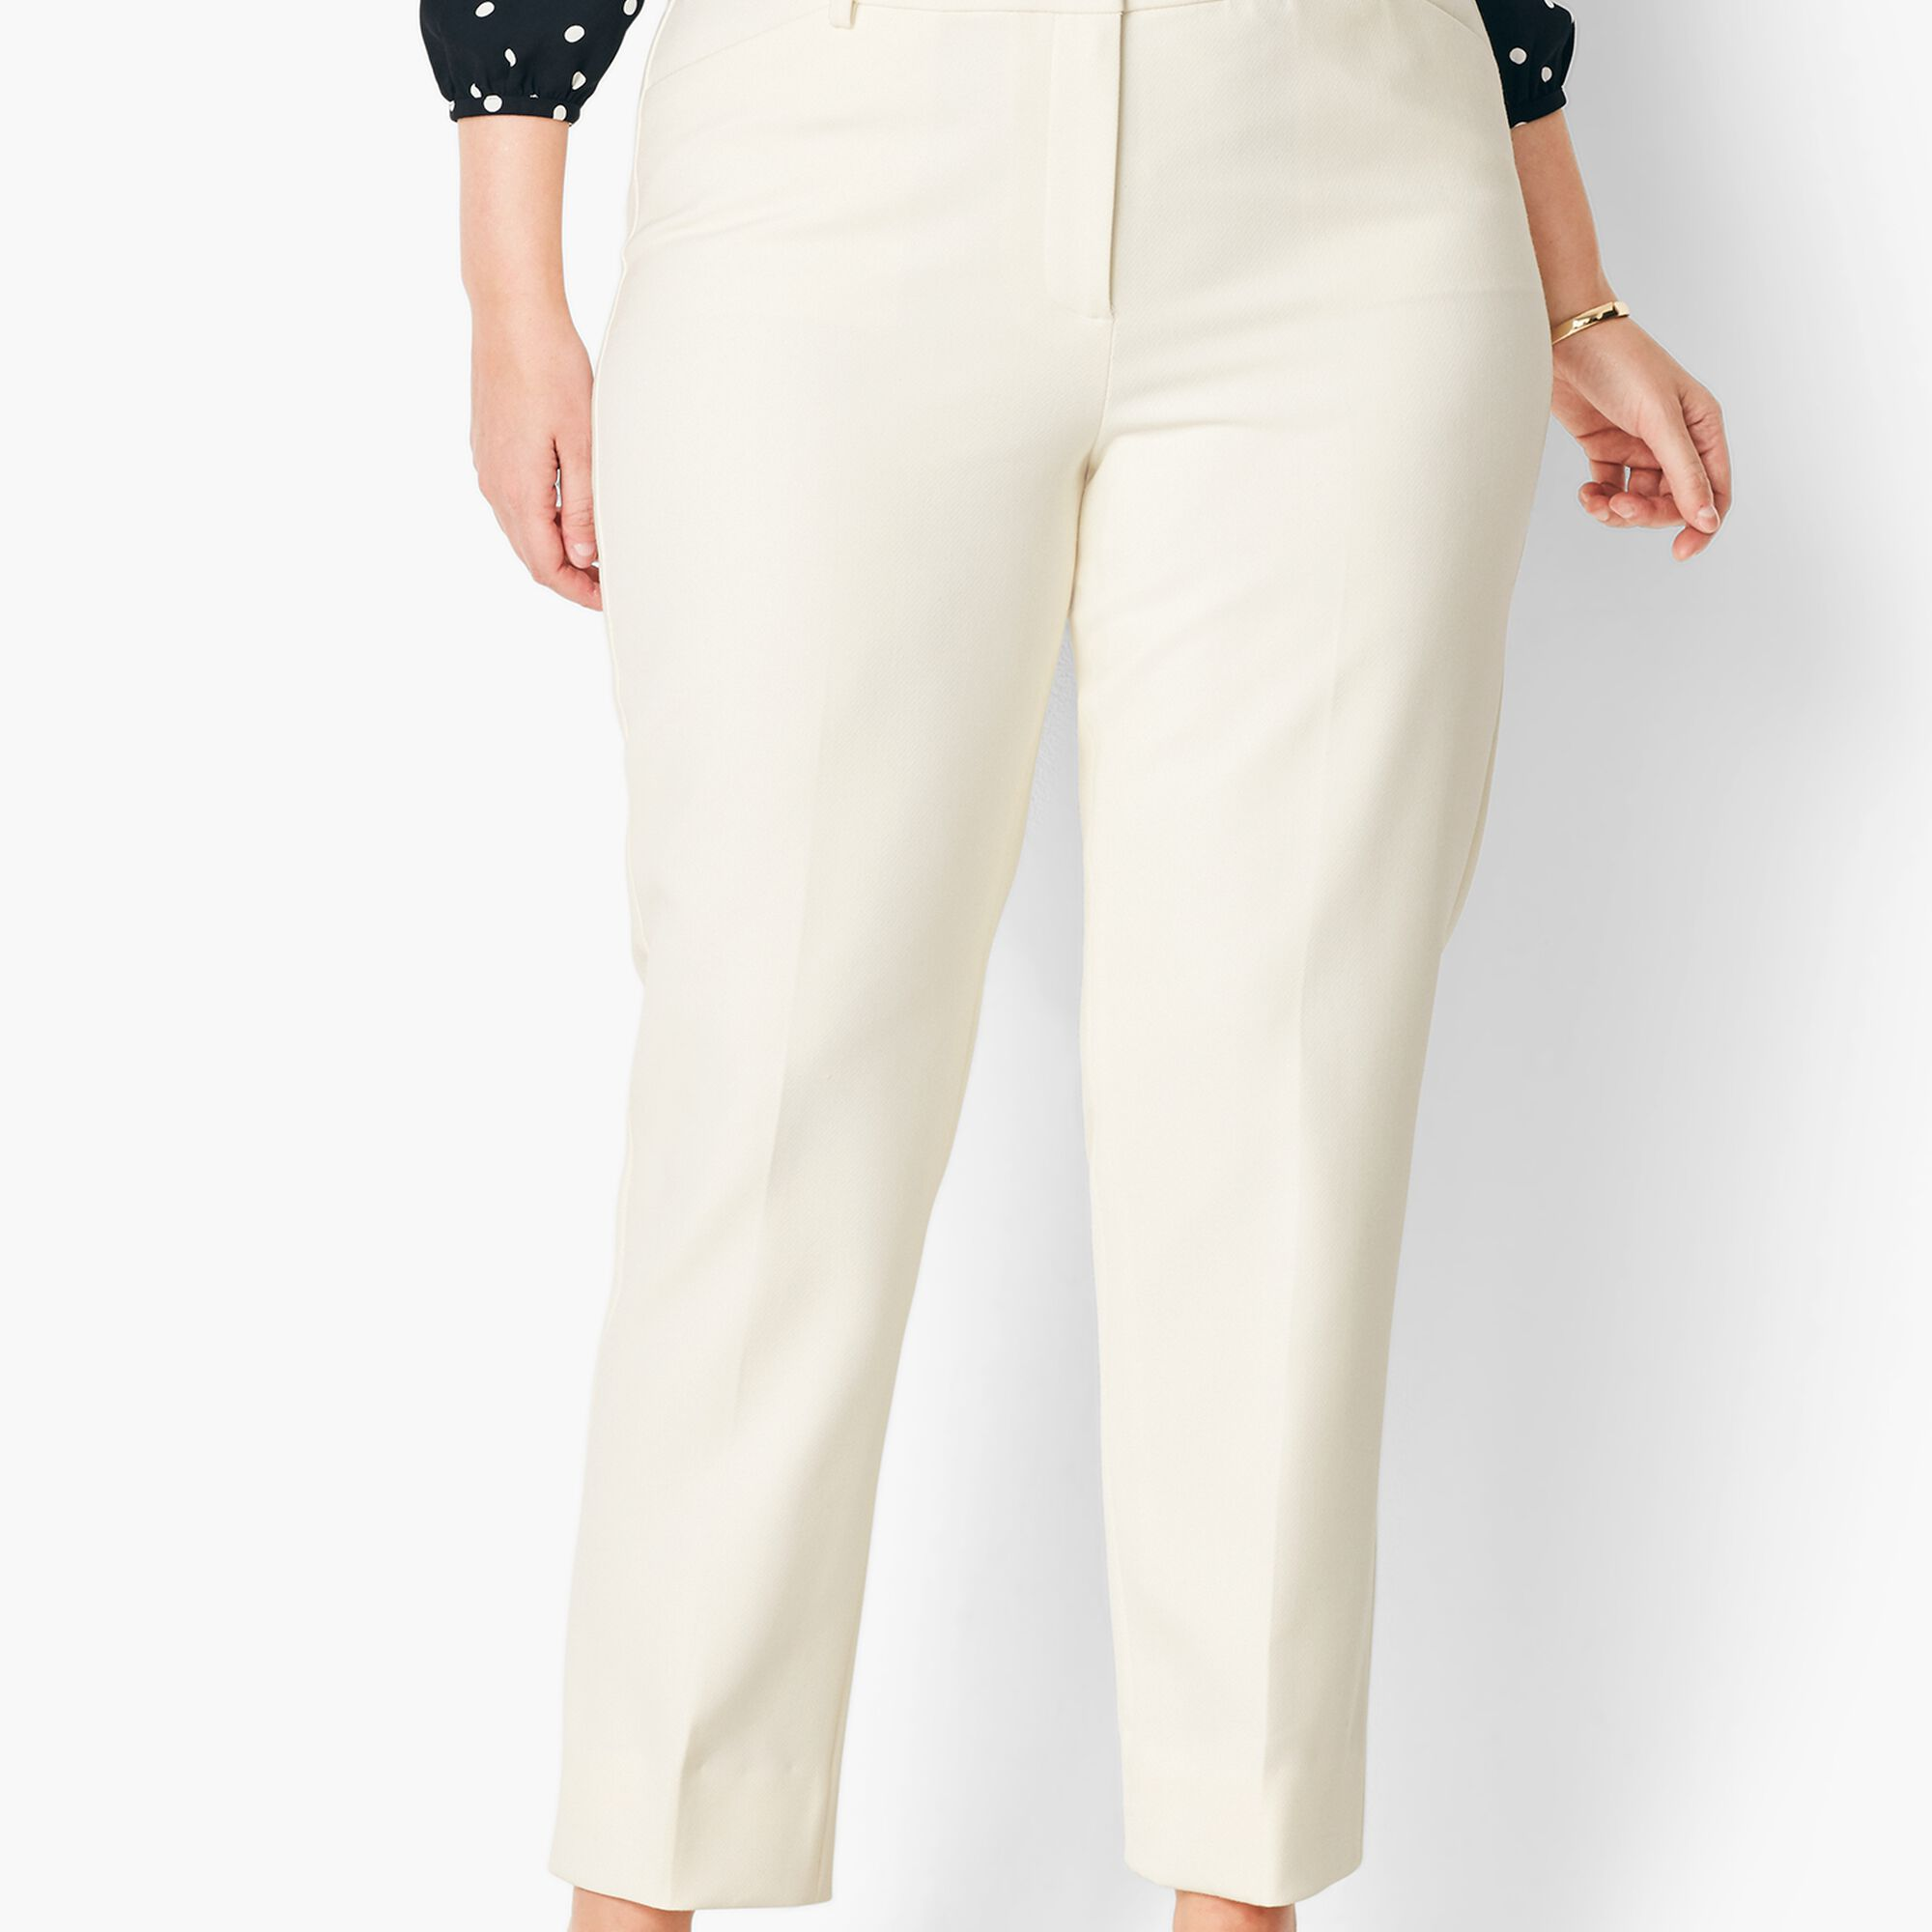 4eccbbe046 Plus Size High-Waist Tailored Ankle Pant - Ivory Opens a New Window.